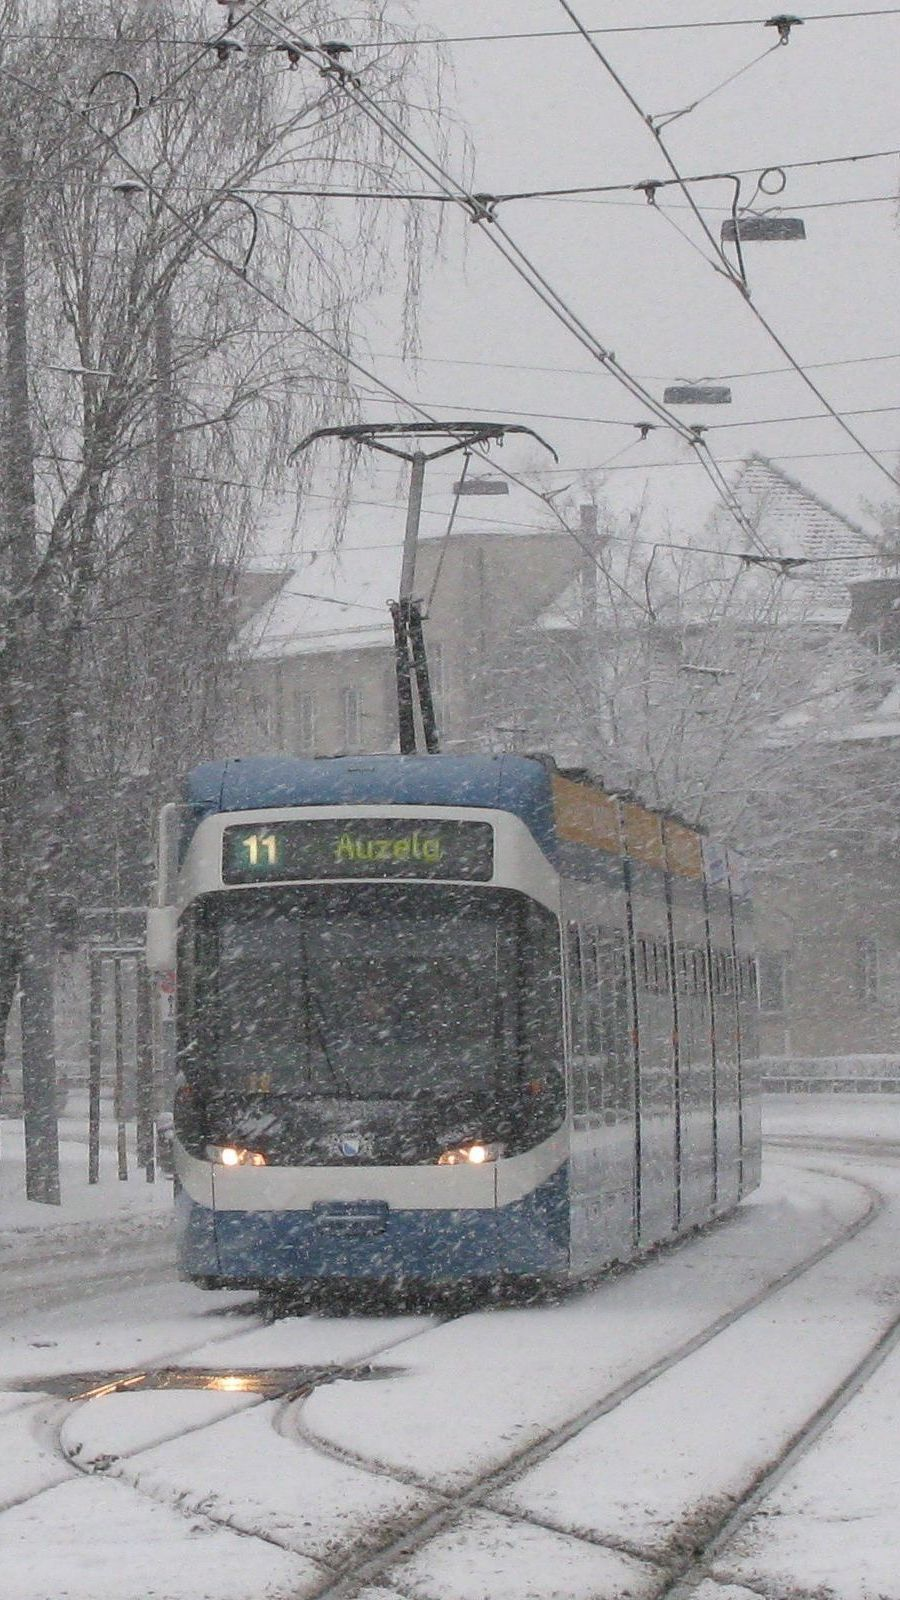 Tram in snow Bucheggplatz